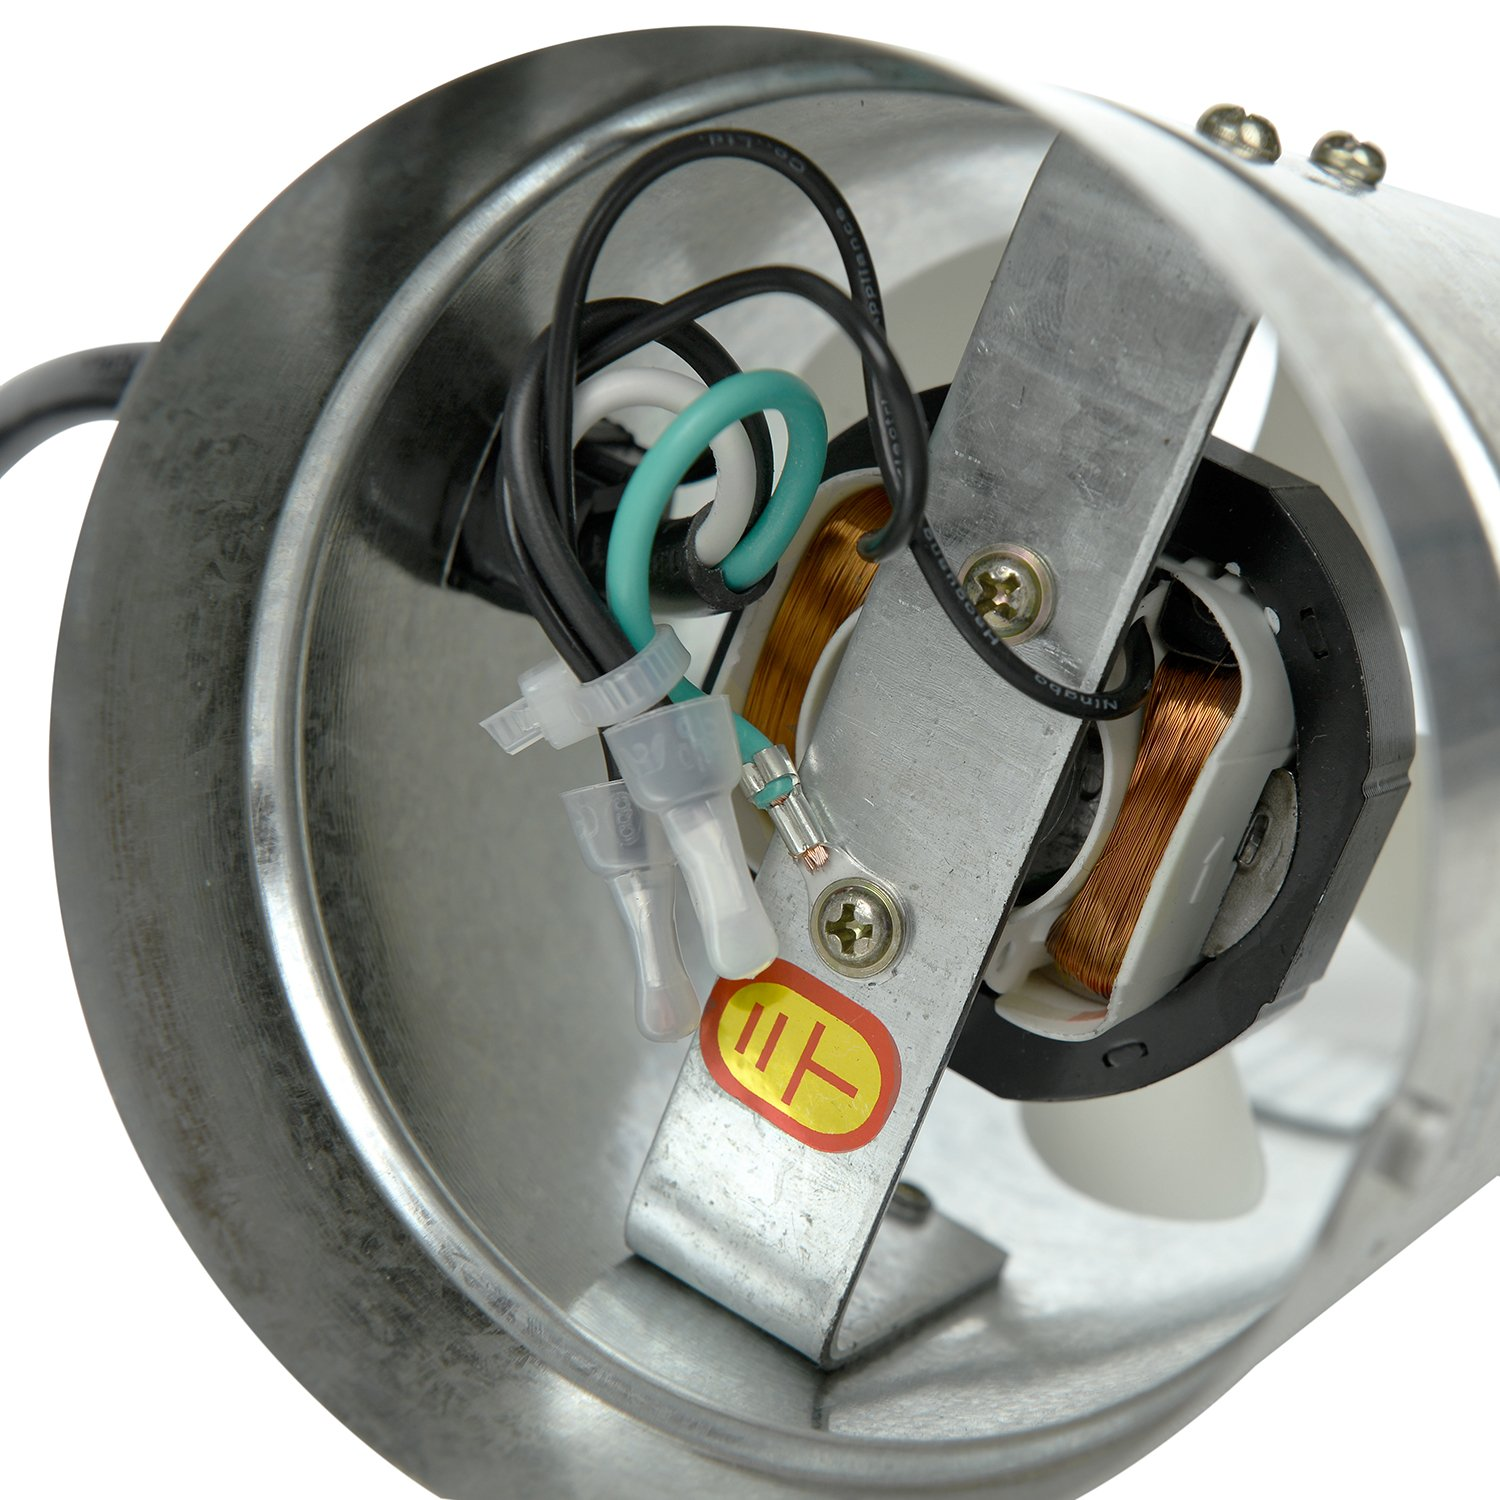 HiHydro 4'' Inline Duct Booster Fan 100 CFM, Low Noise & Extra Long 5.5' Grounded Power Cord (4''/100CFM) by HiHydro (Image #3)